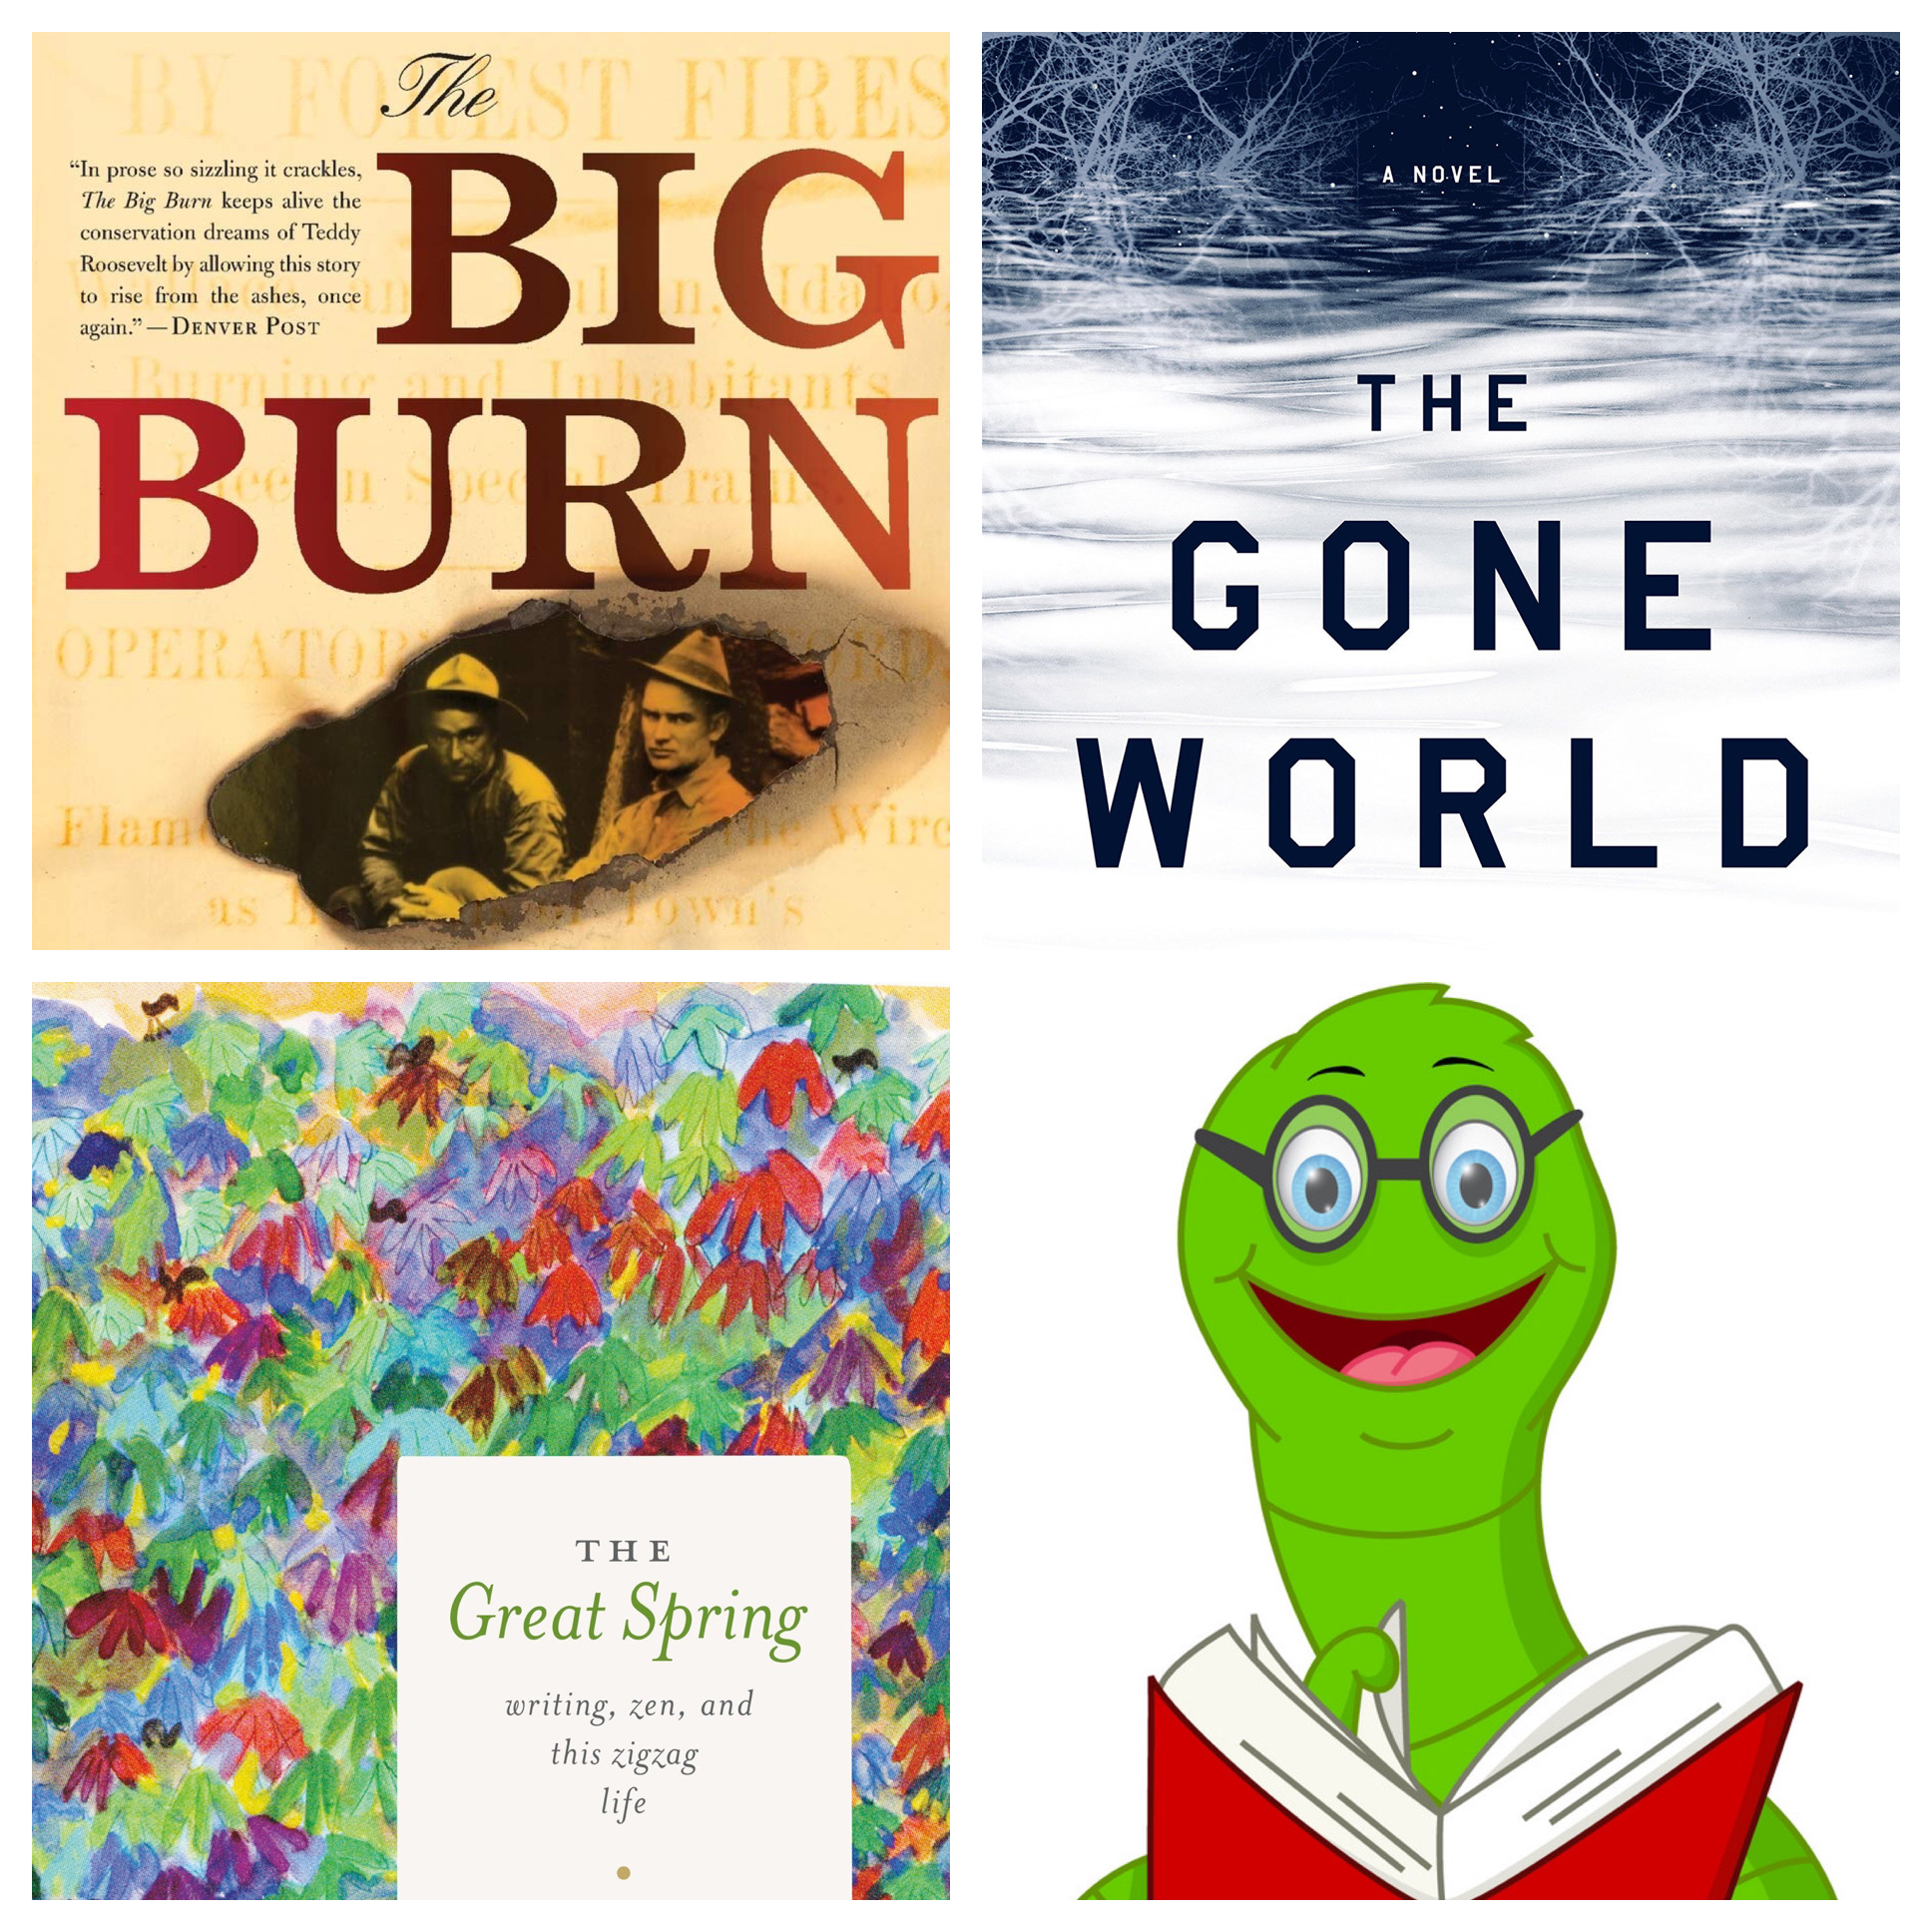 Covers of Big Burn, Gone World, and Great Spring, and a cartoon worm in glasses holding a book